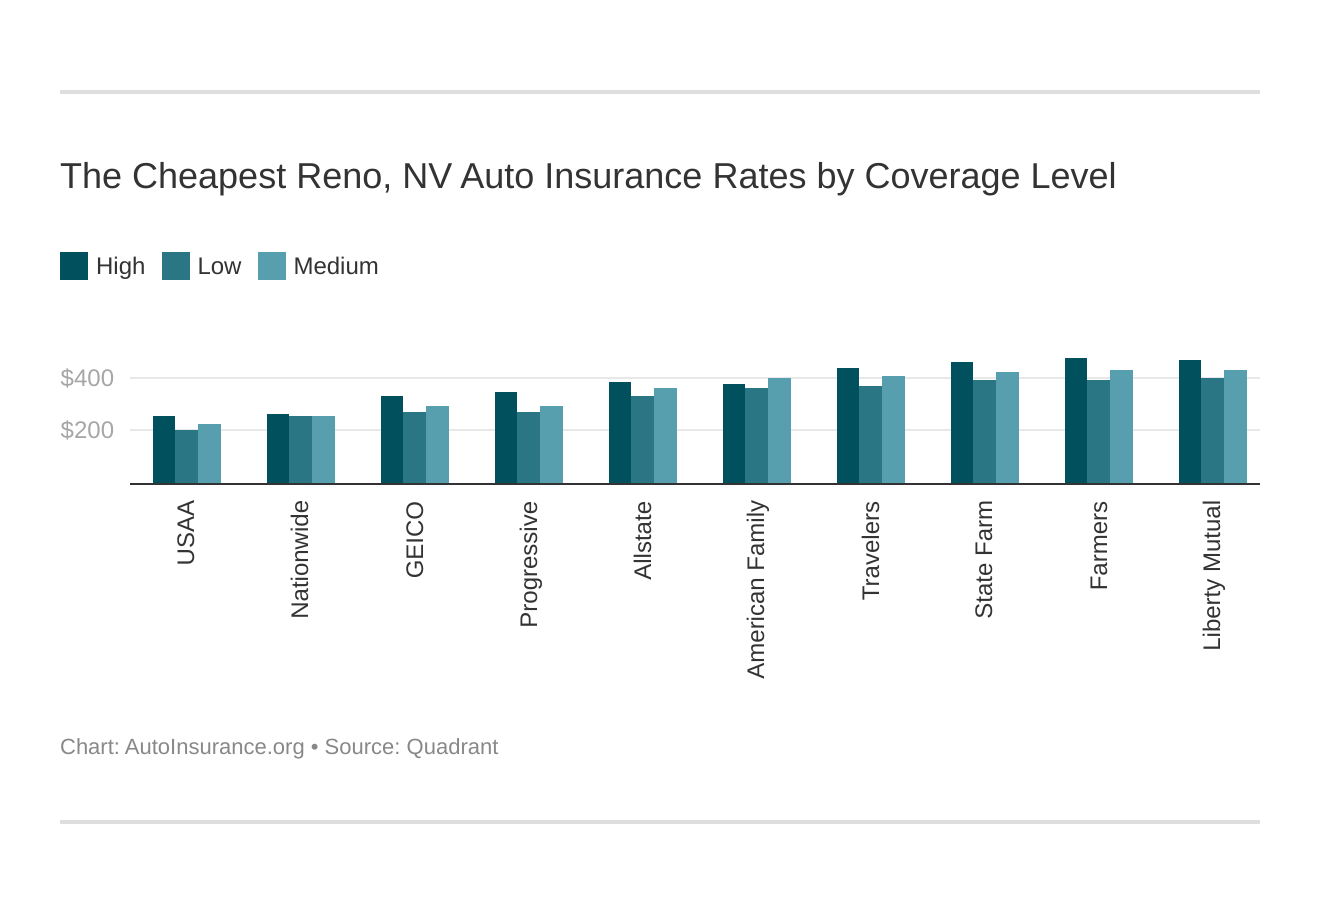 The Cheapest Reno, NV Auto Insurance Rates by Coverage Level